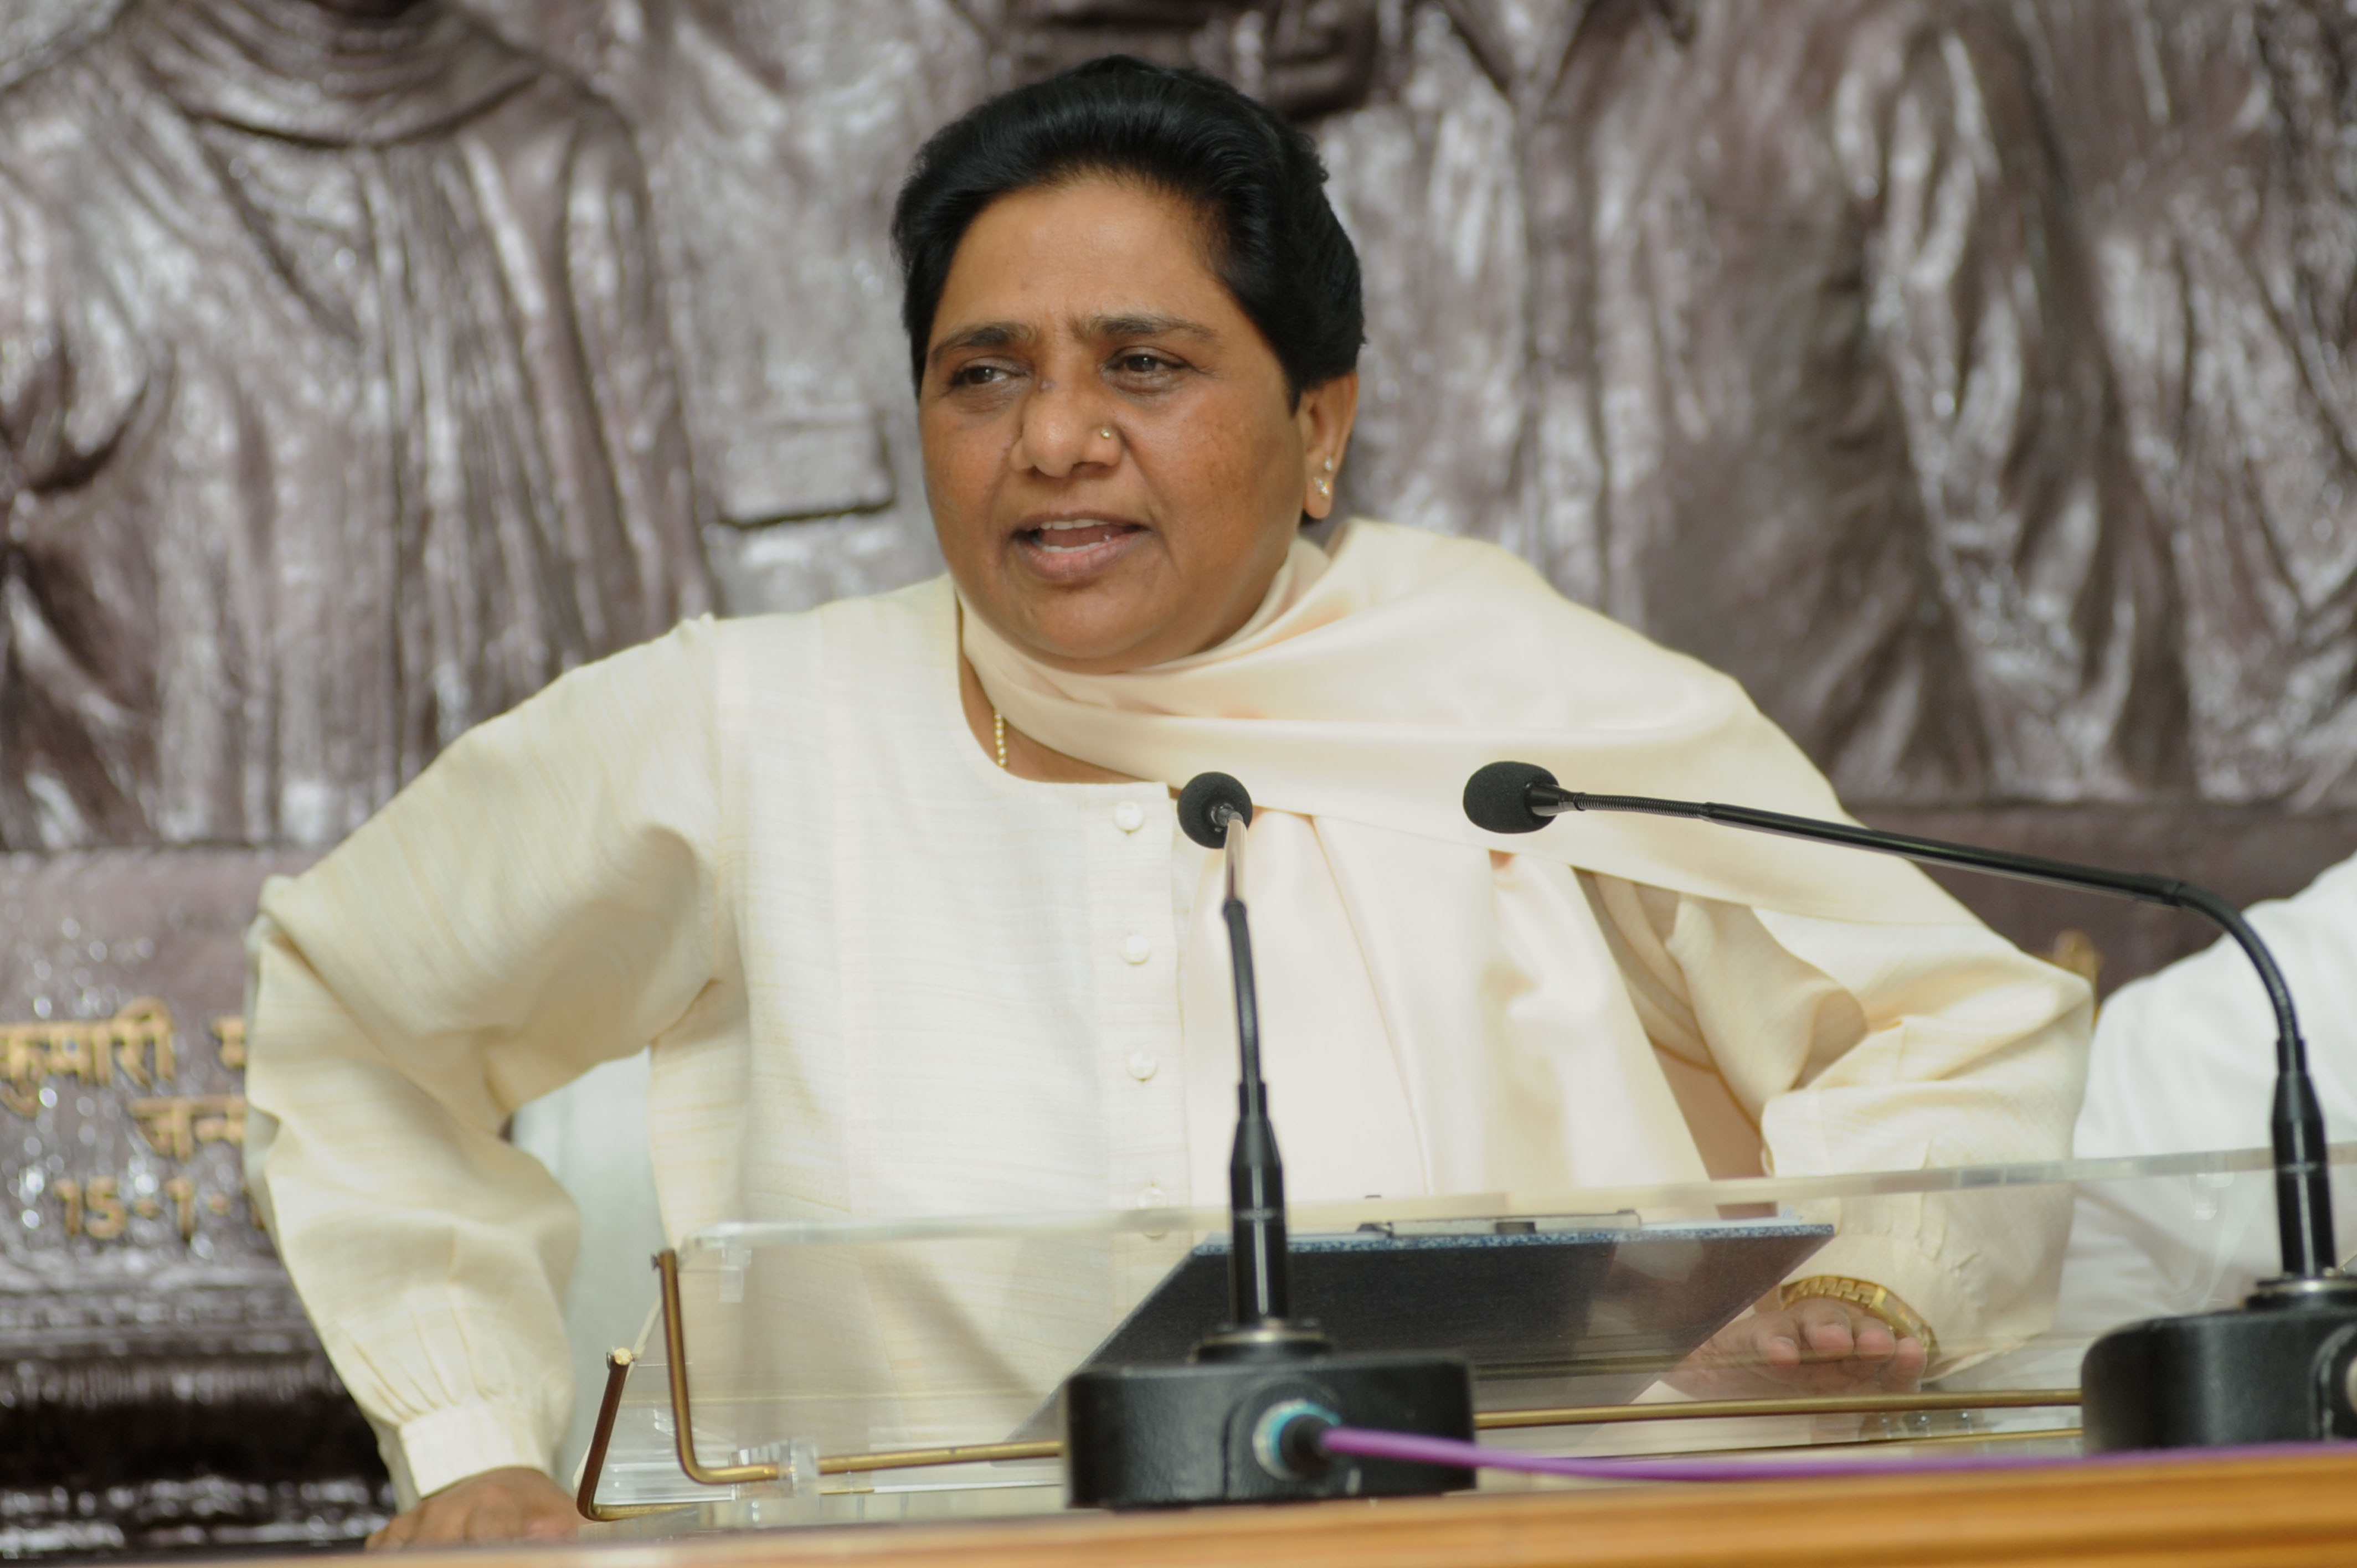 The support might extend to Rajasthan too, Mayavati has said.